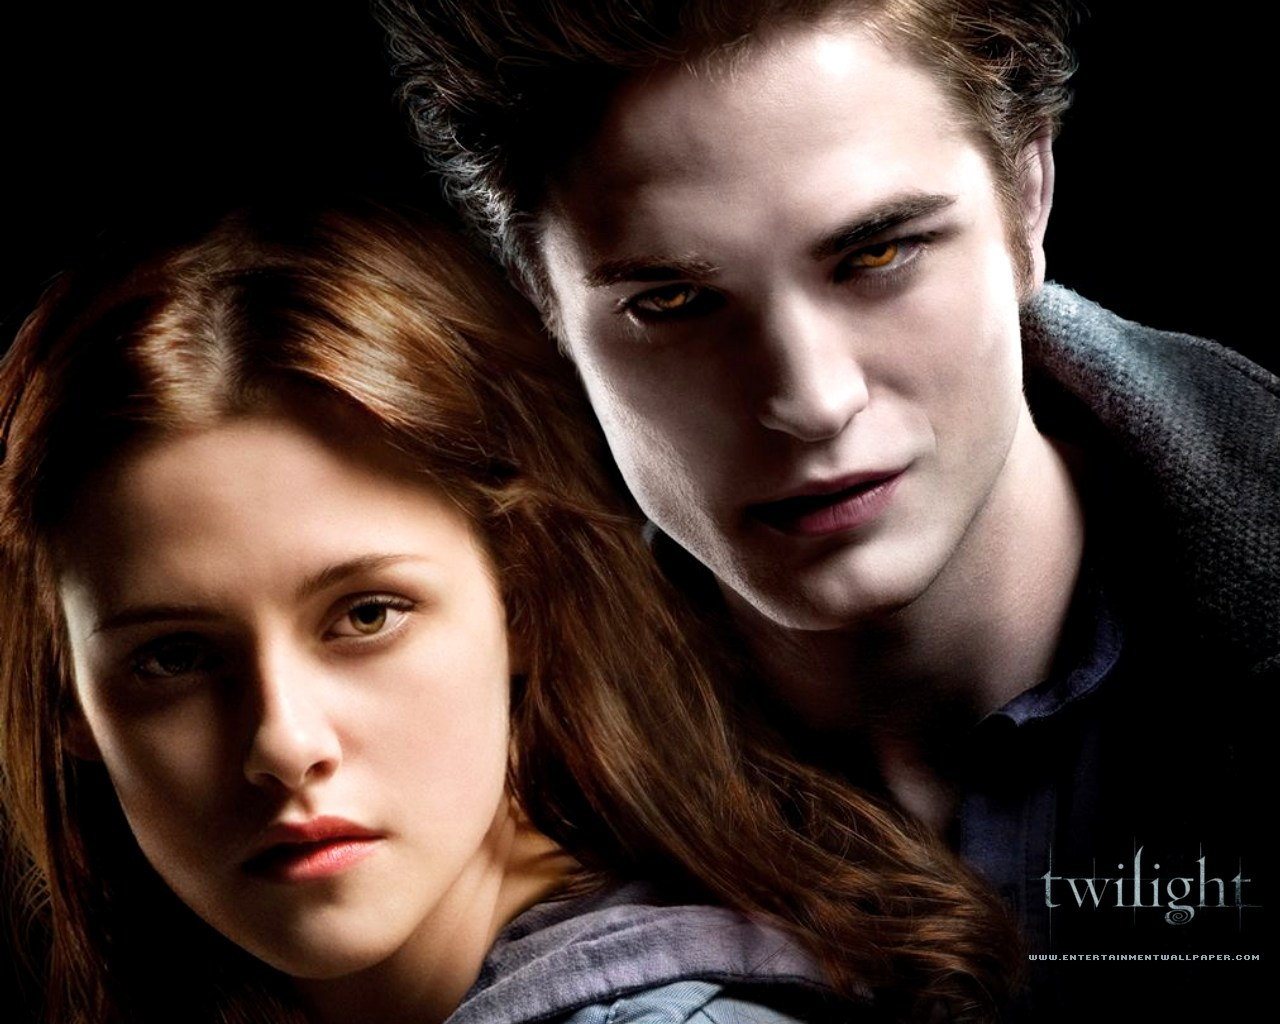 wallpaper provider: twilight wallpapers - set 01